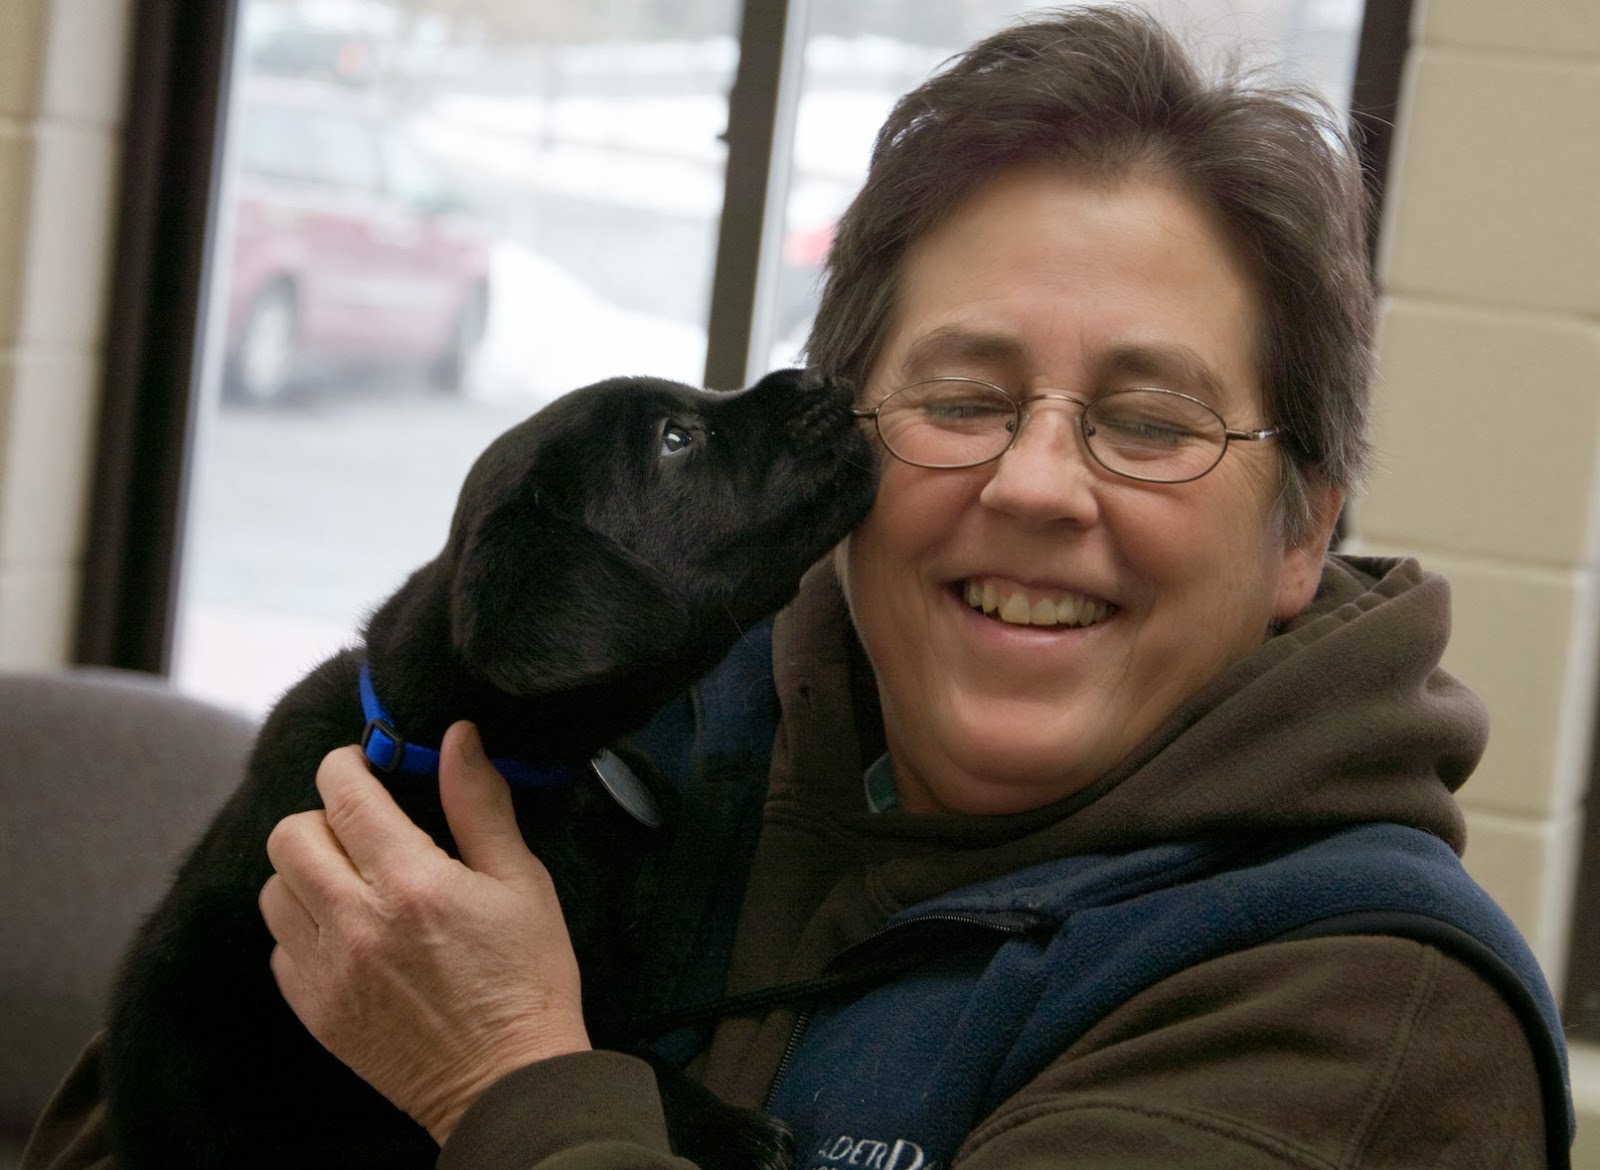 A woman with short brown hair and glasses, wearing a brown hooded sweatshirt and blue vest, is holding a small black lab puppy in her hands. The puppy is licking her right cheek and she is squinting and smiling.